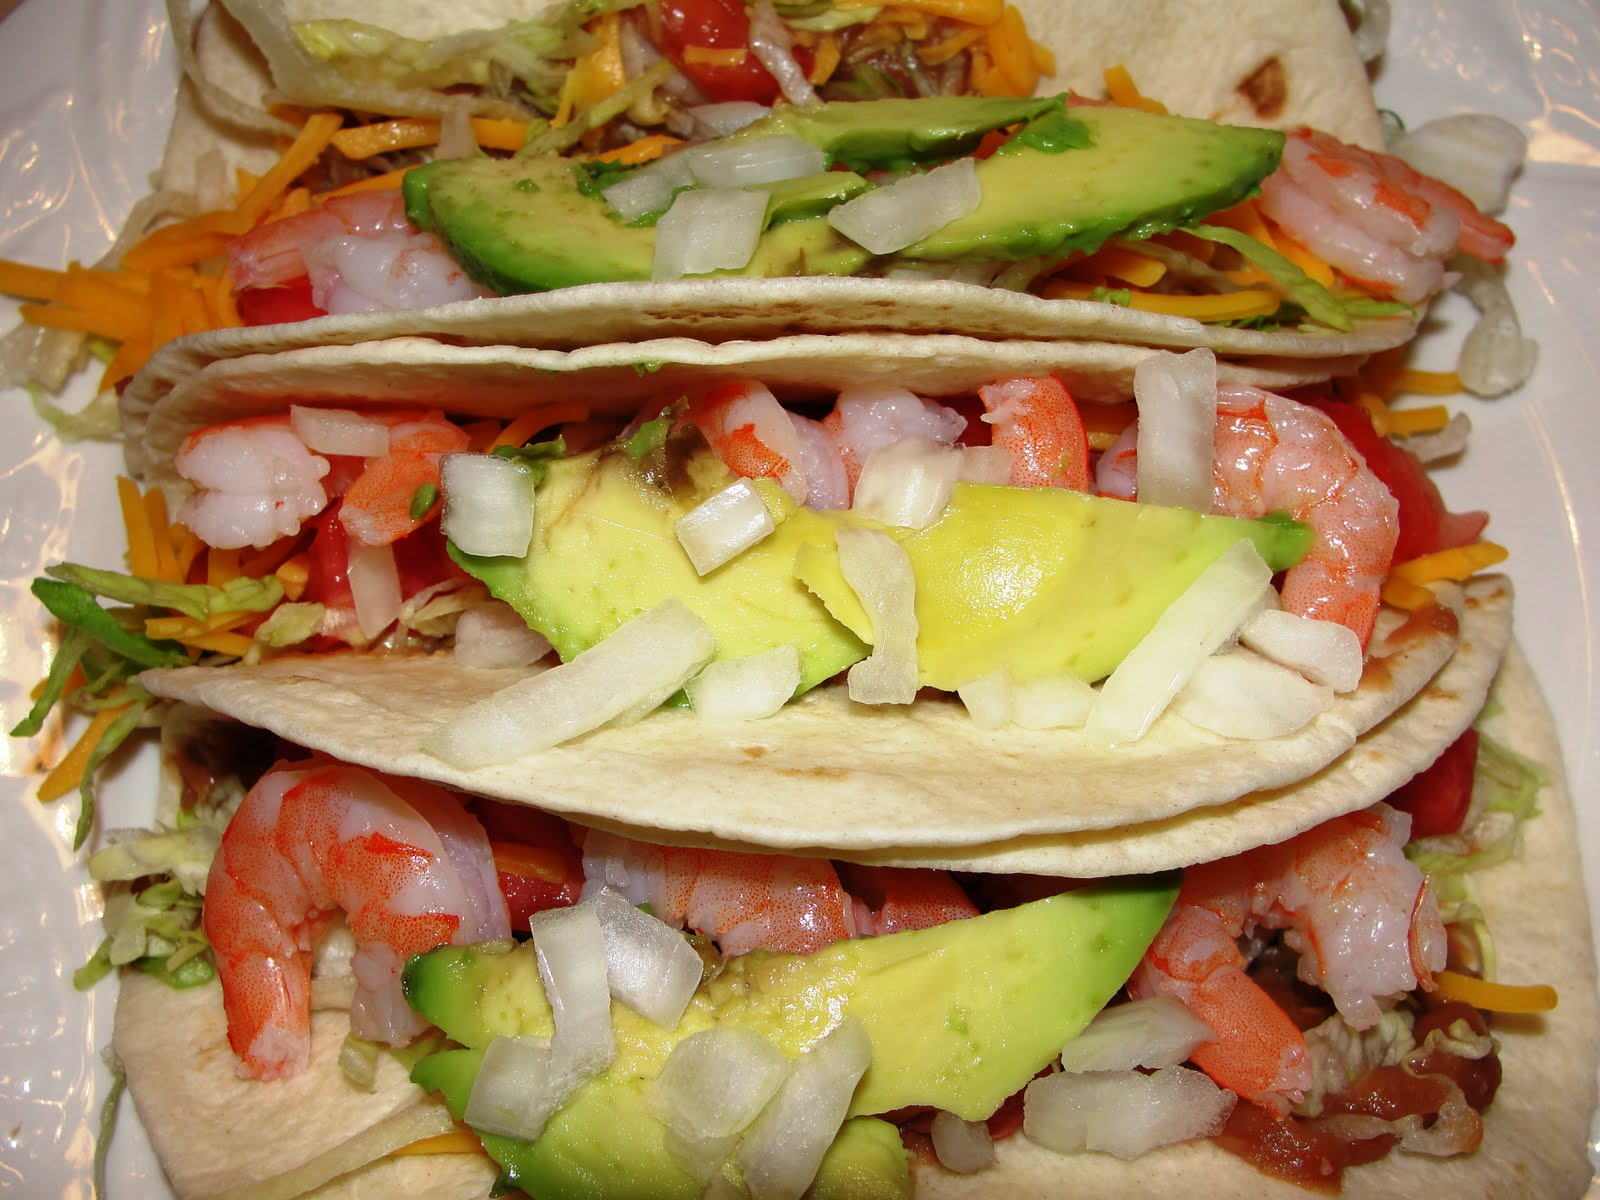 ... shrimp tacos summer squash tacos with avocado chimichurri sauce tex